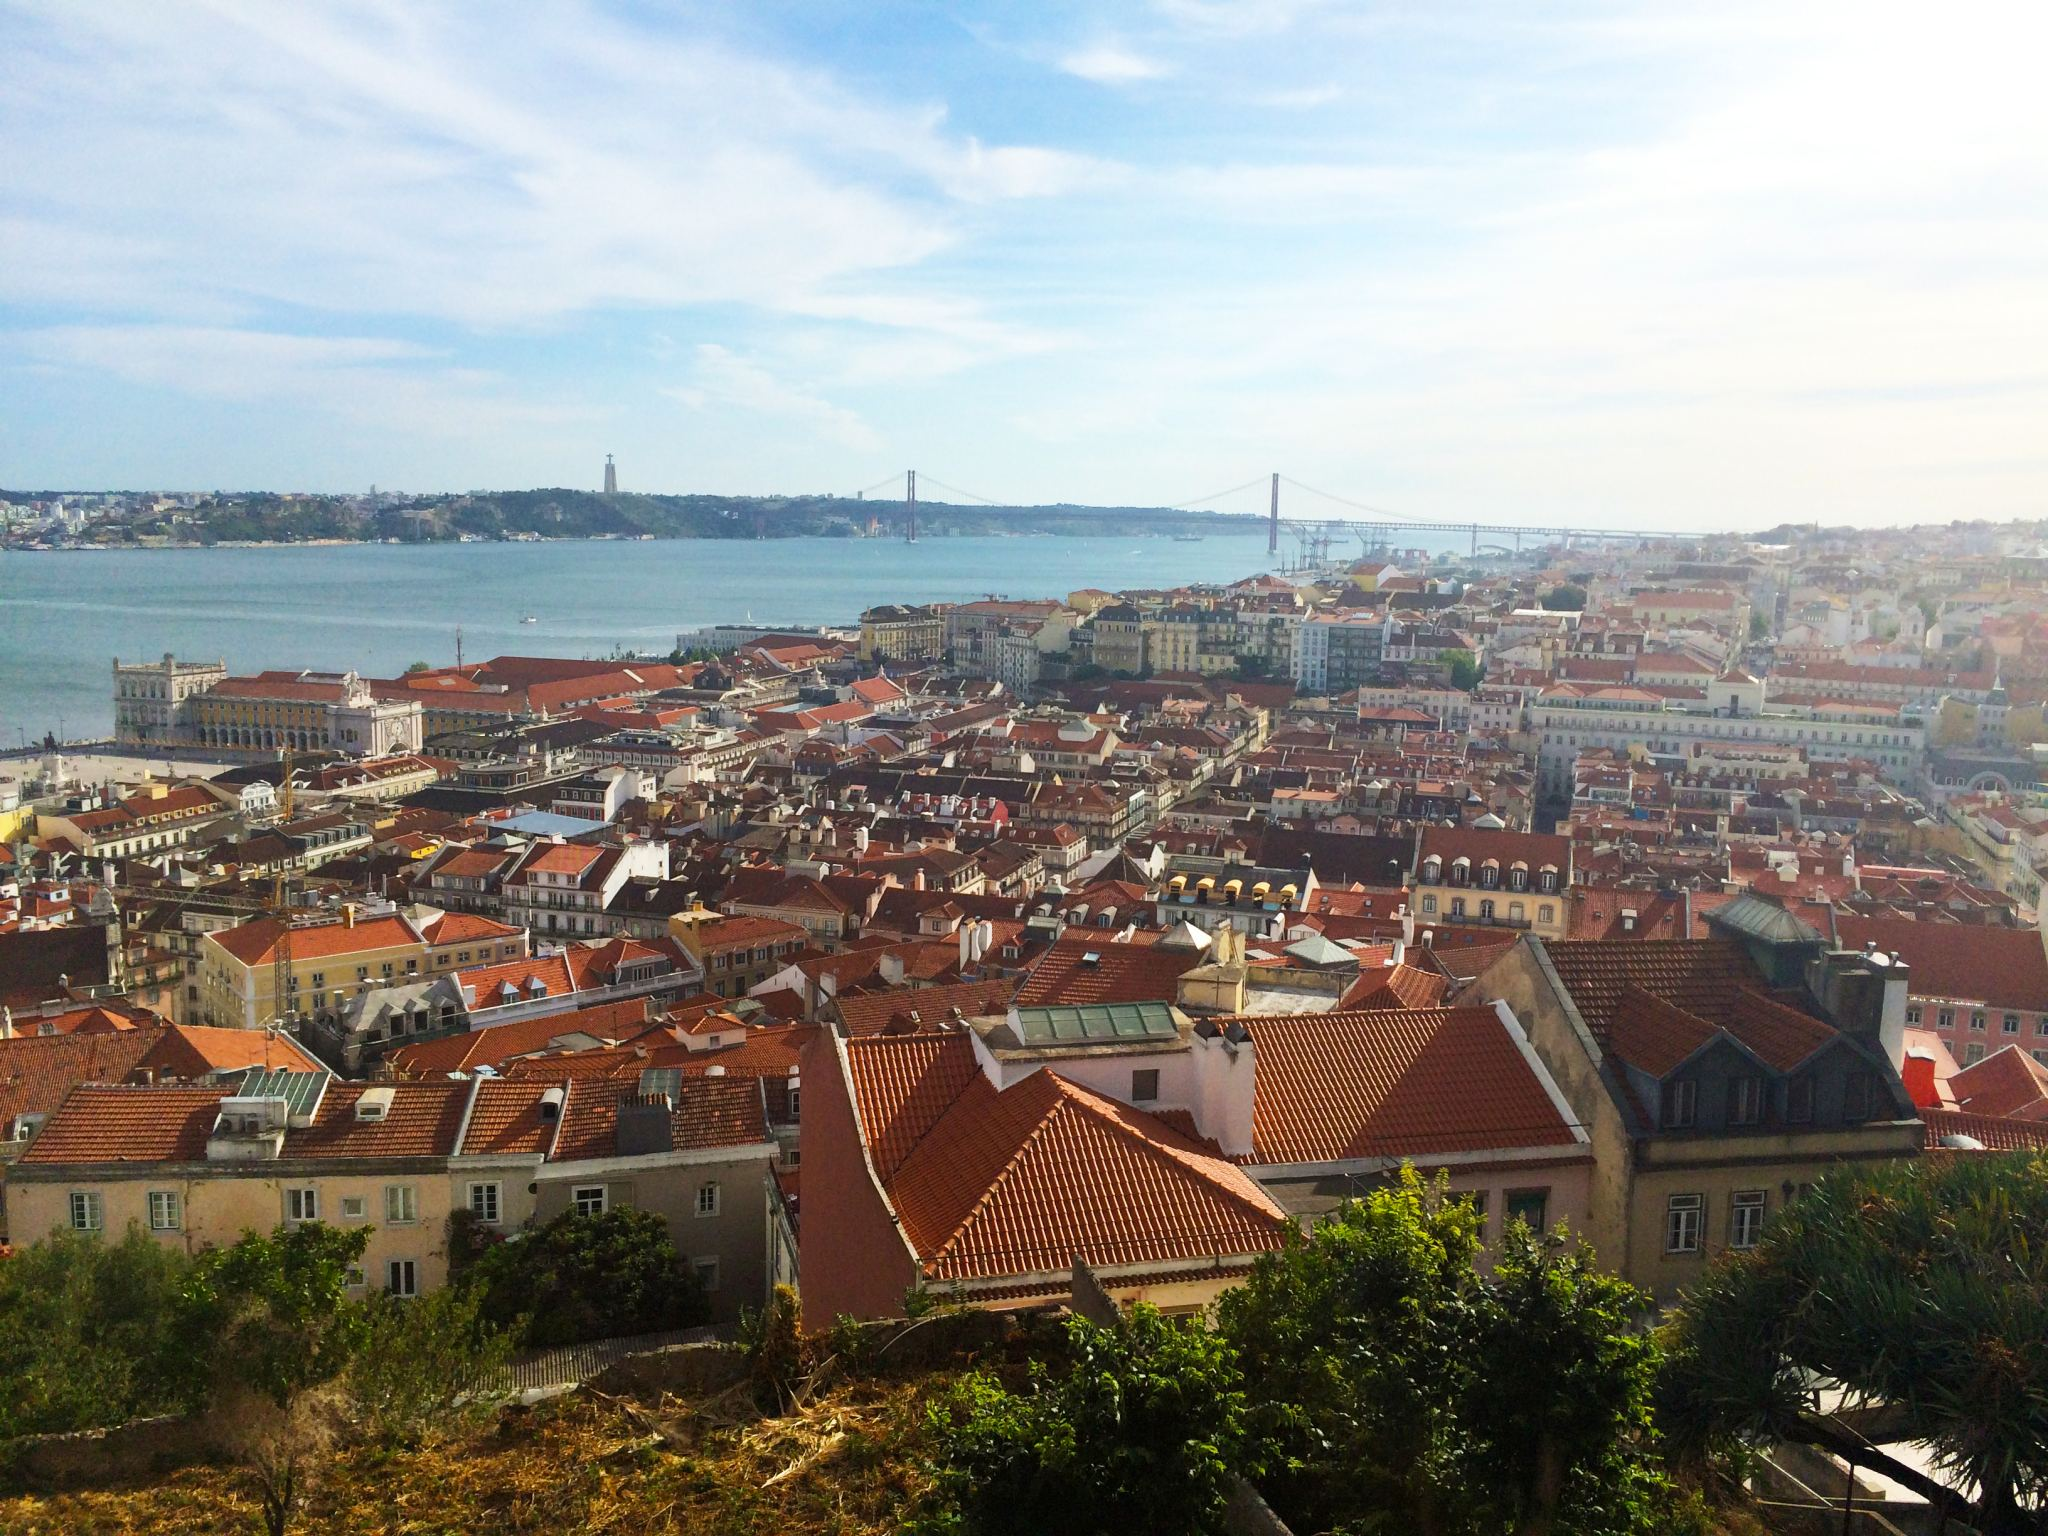 The view over Lisbon from Catelo de S. Jorge.